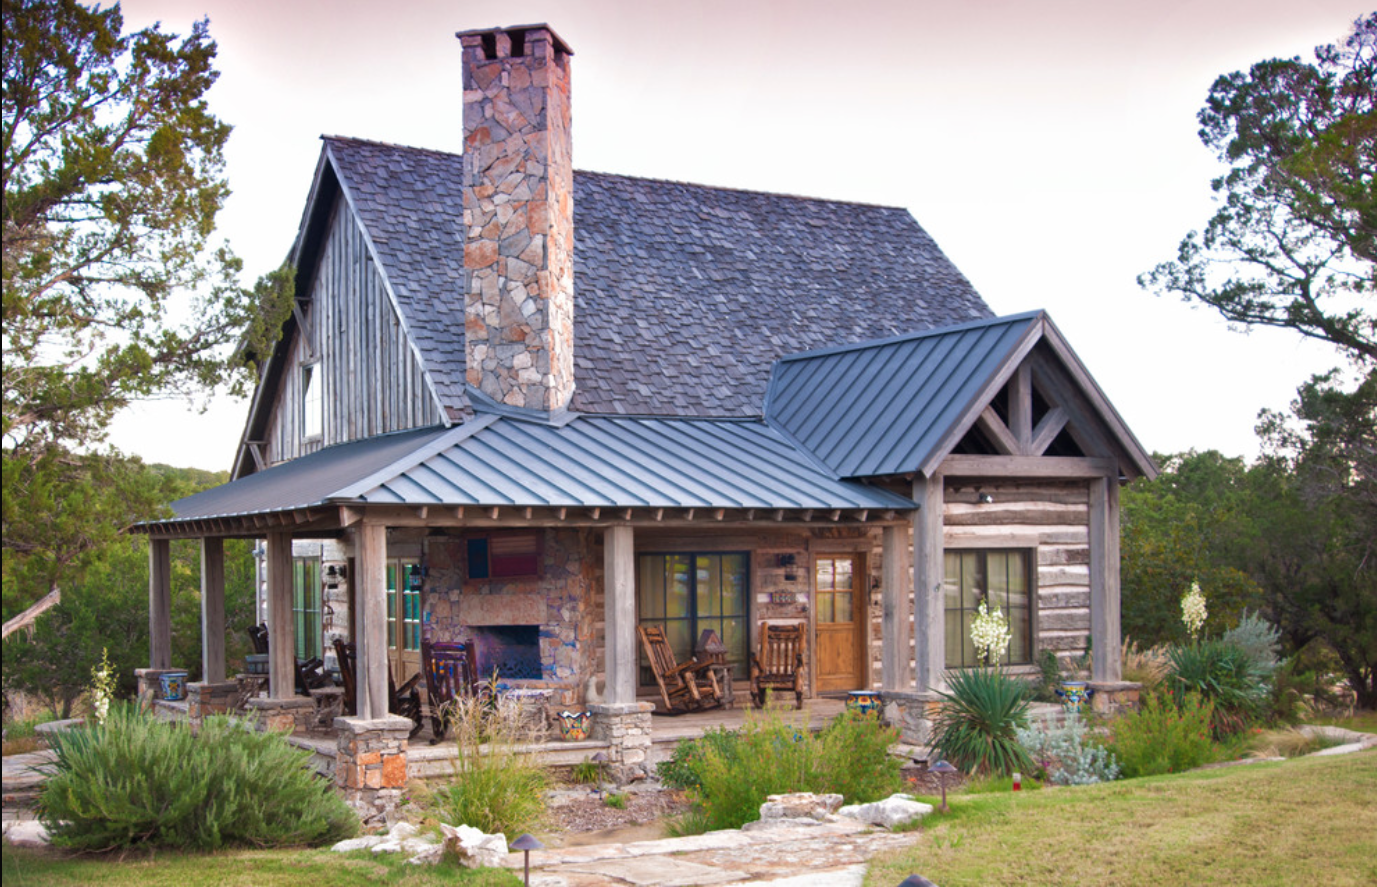 Rustic Mountain House Cabin Design Rustic House Log Homes